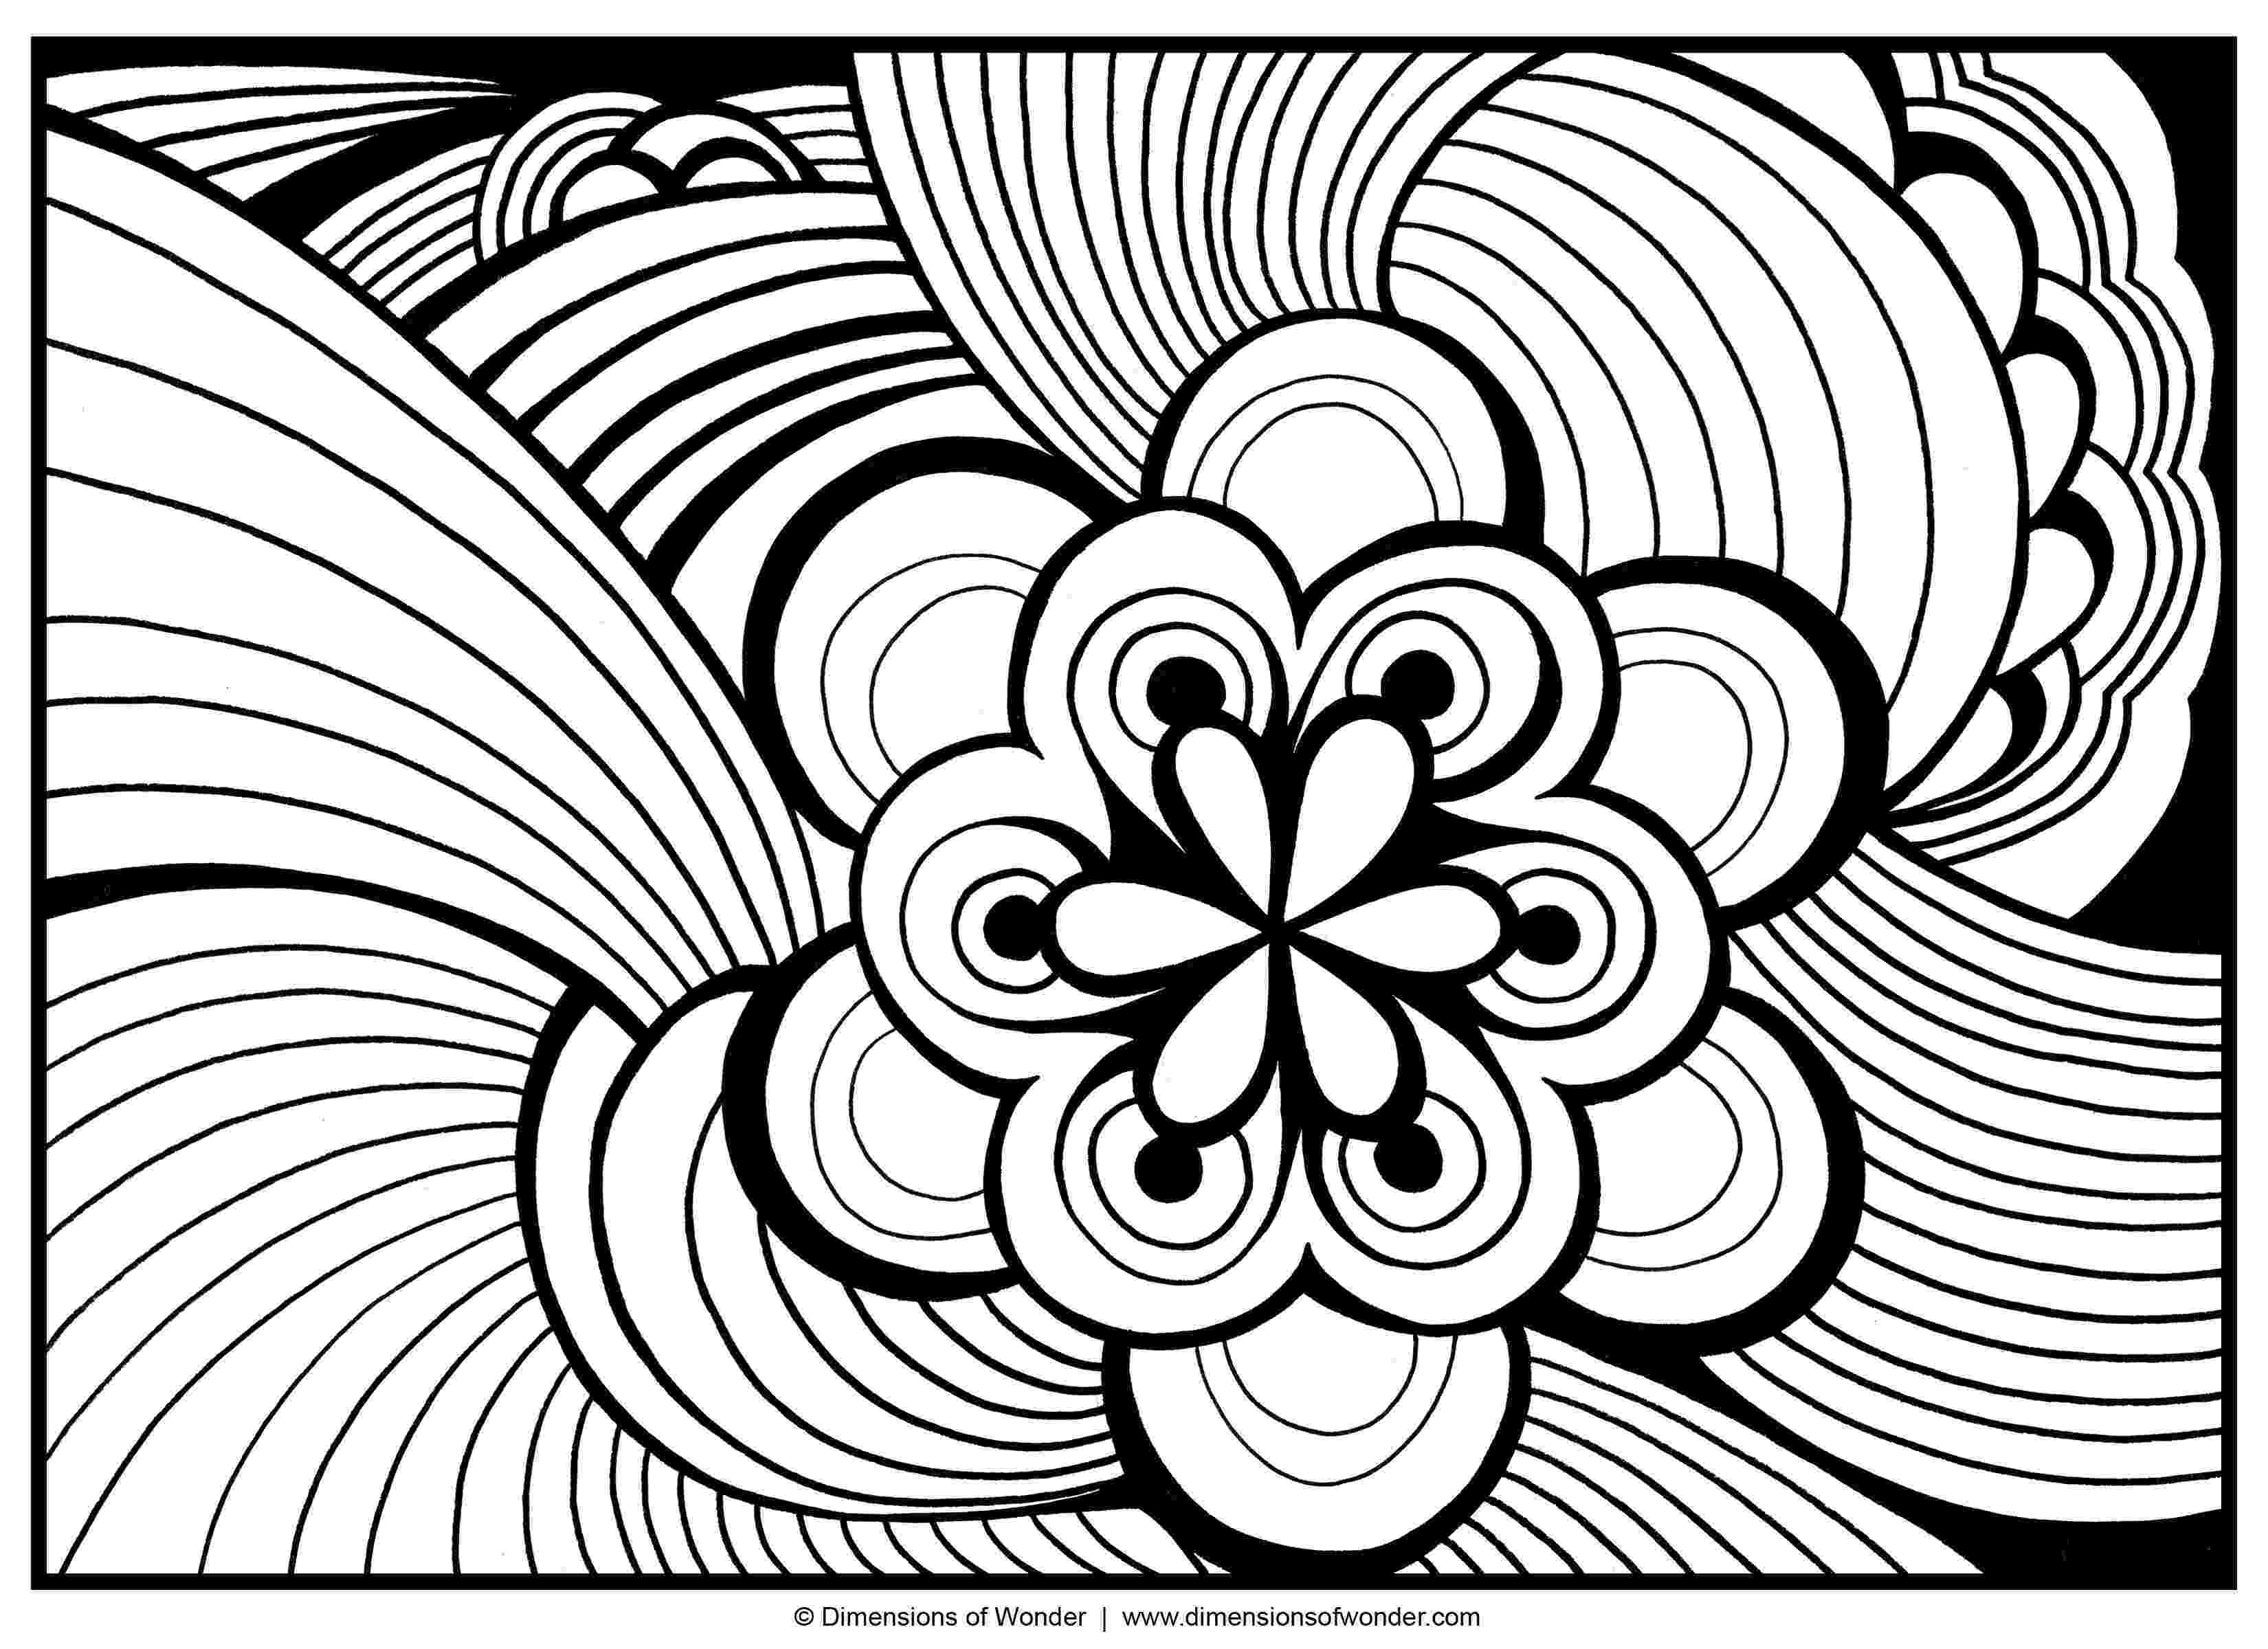 adult coloring pages abstract 22 printable mandala abstract colouring pages for adult abstract pages coloring